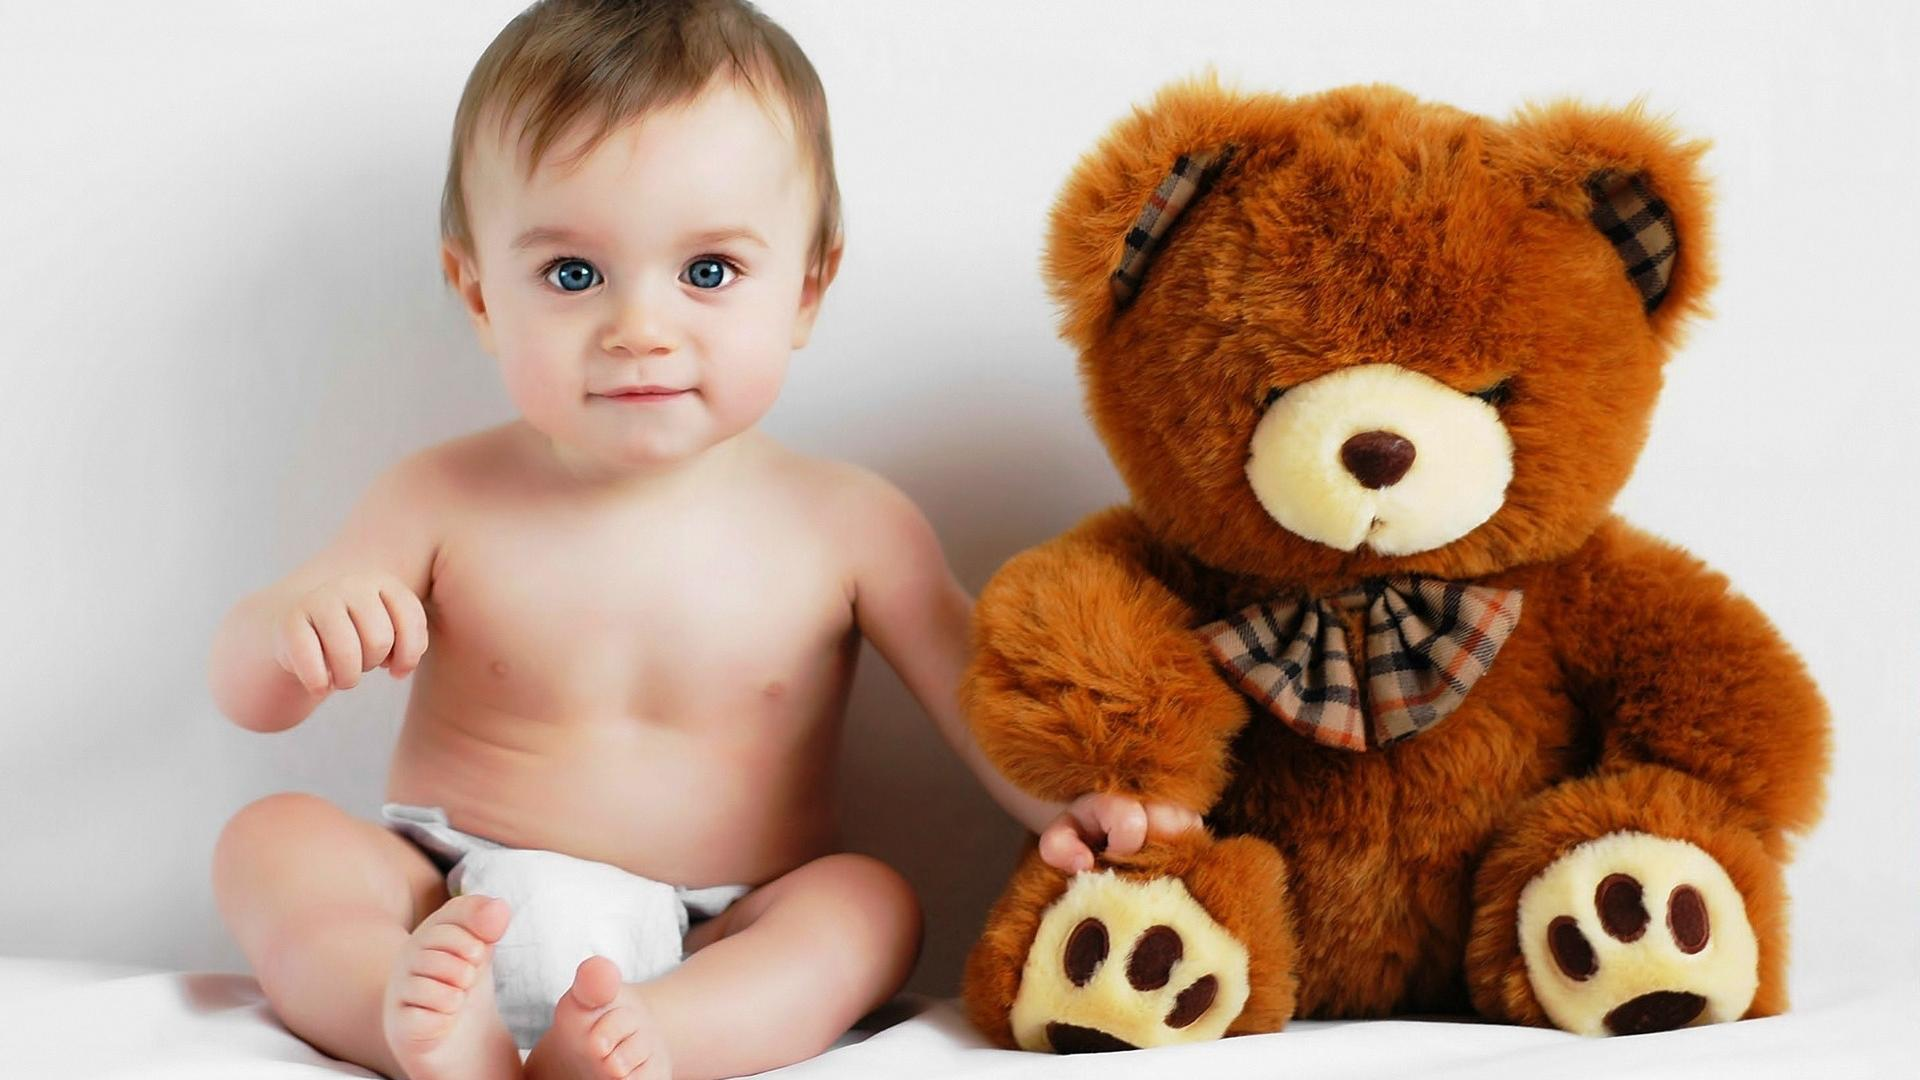 Cute HD Wallpapers Of Baby Boy For Bedroom & Desktop | HD Wallpapers Wallpaper